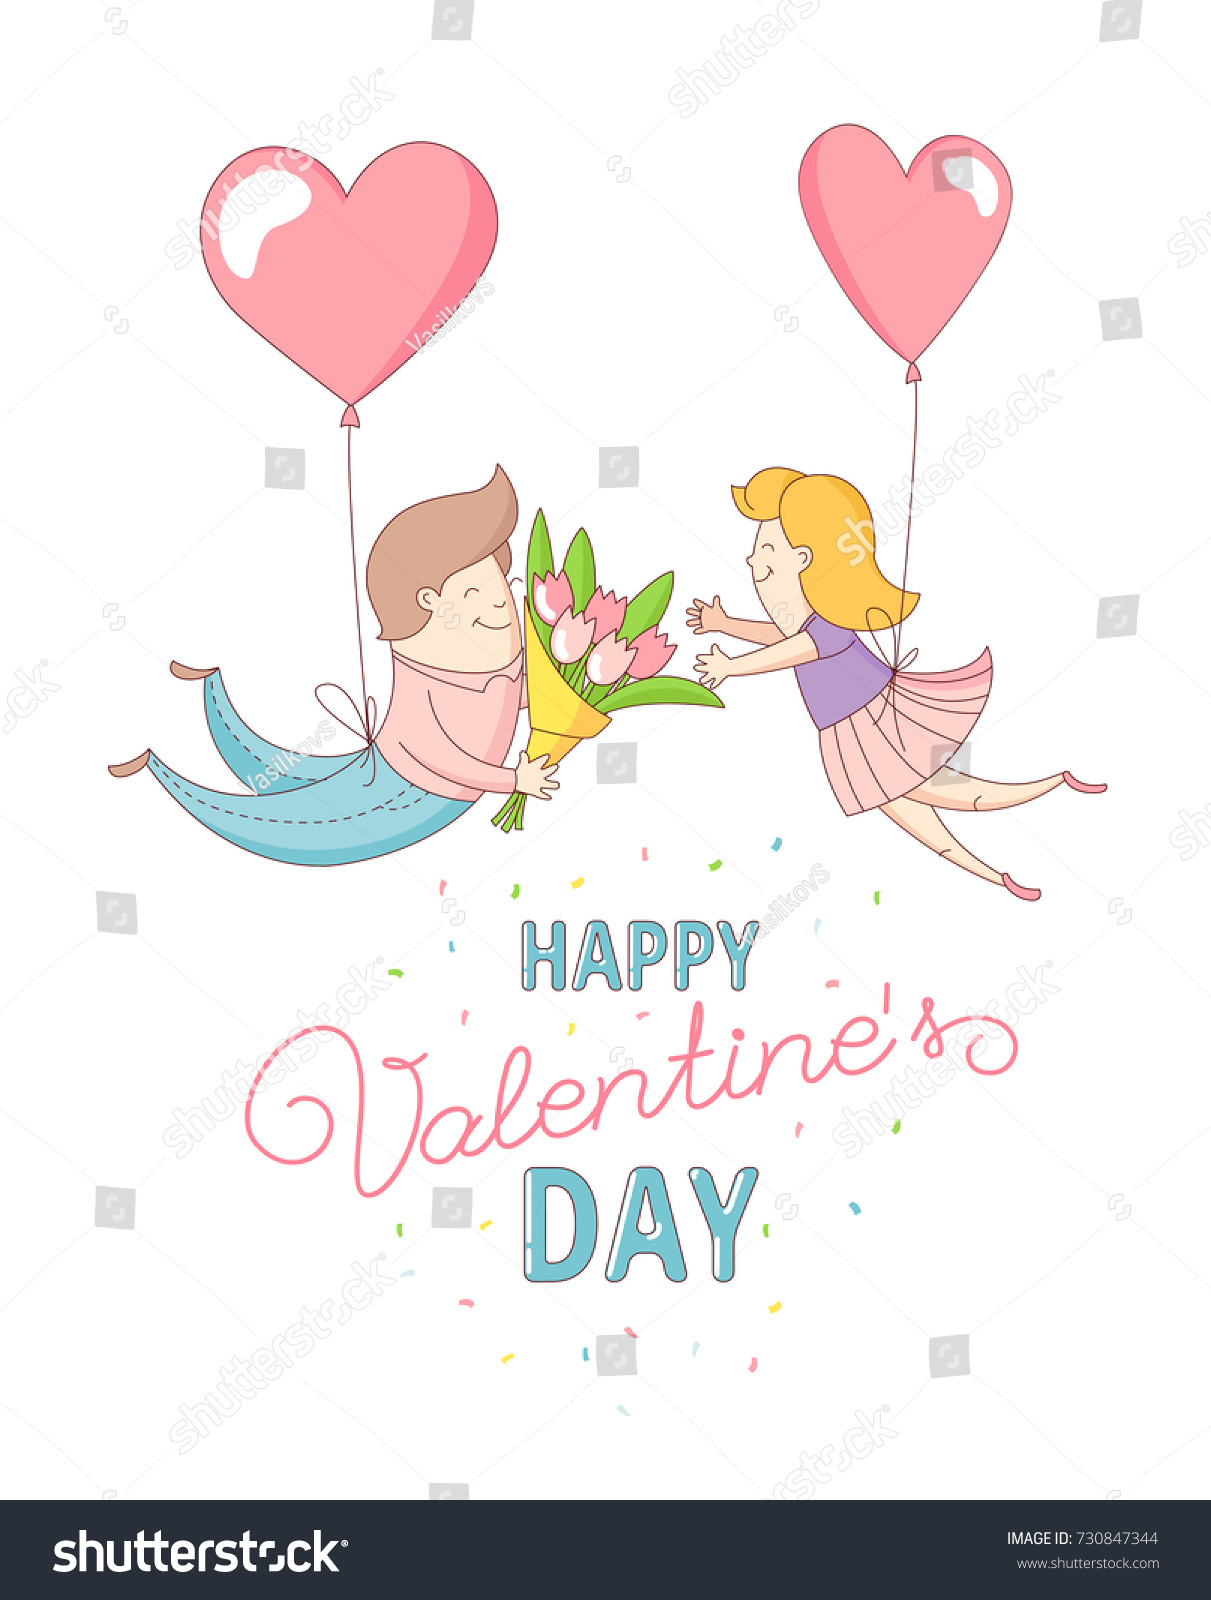 Happy valentines day party greeting card stock illustration happy valentines day party greeting card invitation funny female girl and male boy characters flying into kristyandbryce Gallery